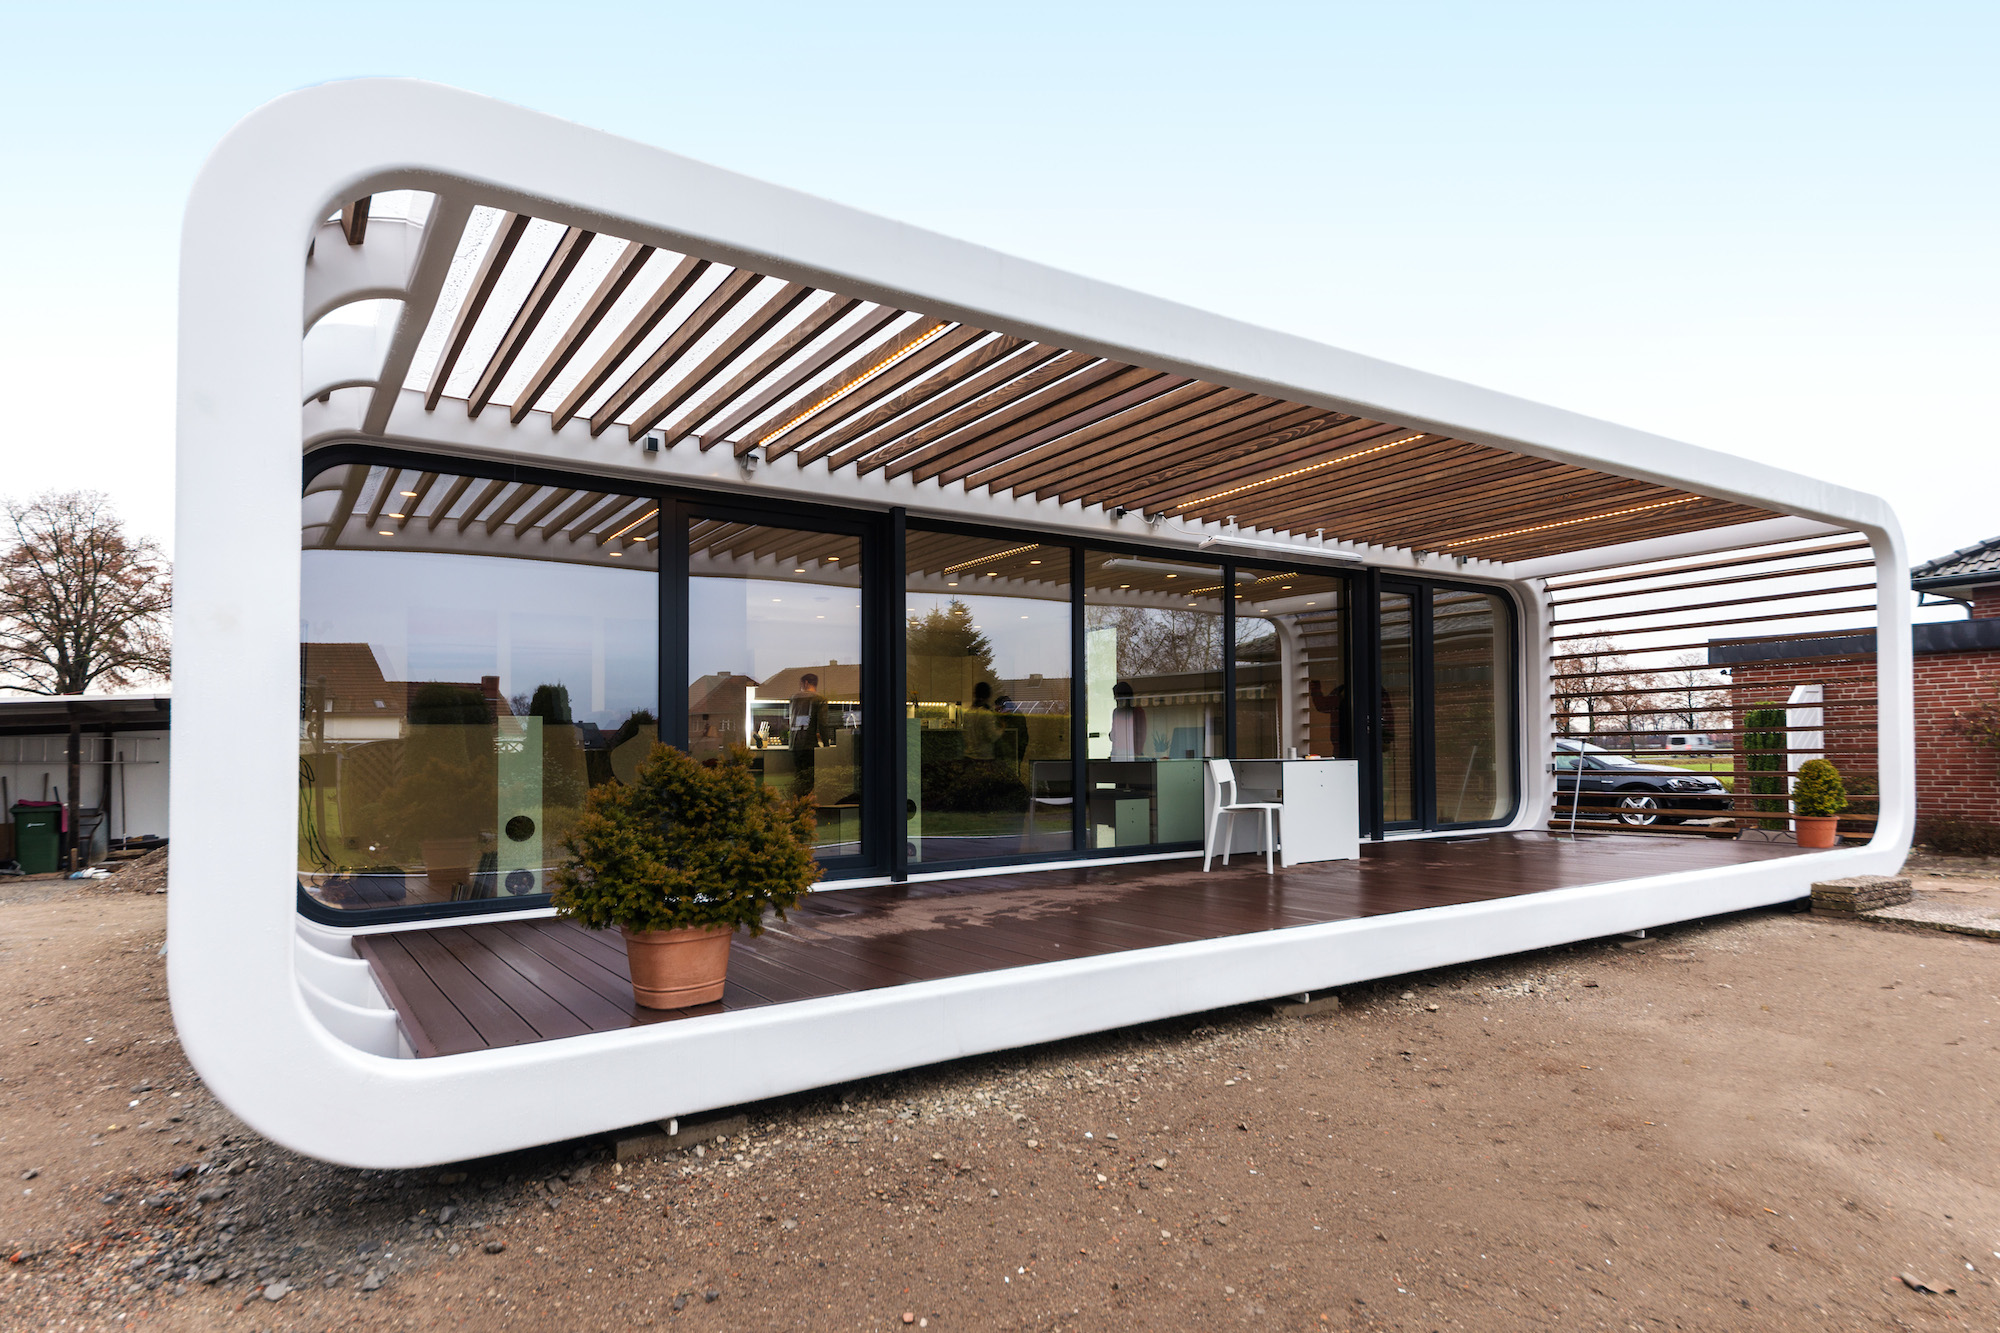 5 of the coolest prefab houses you can order right now